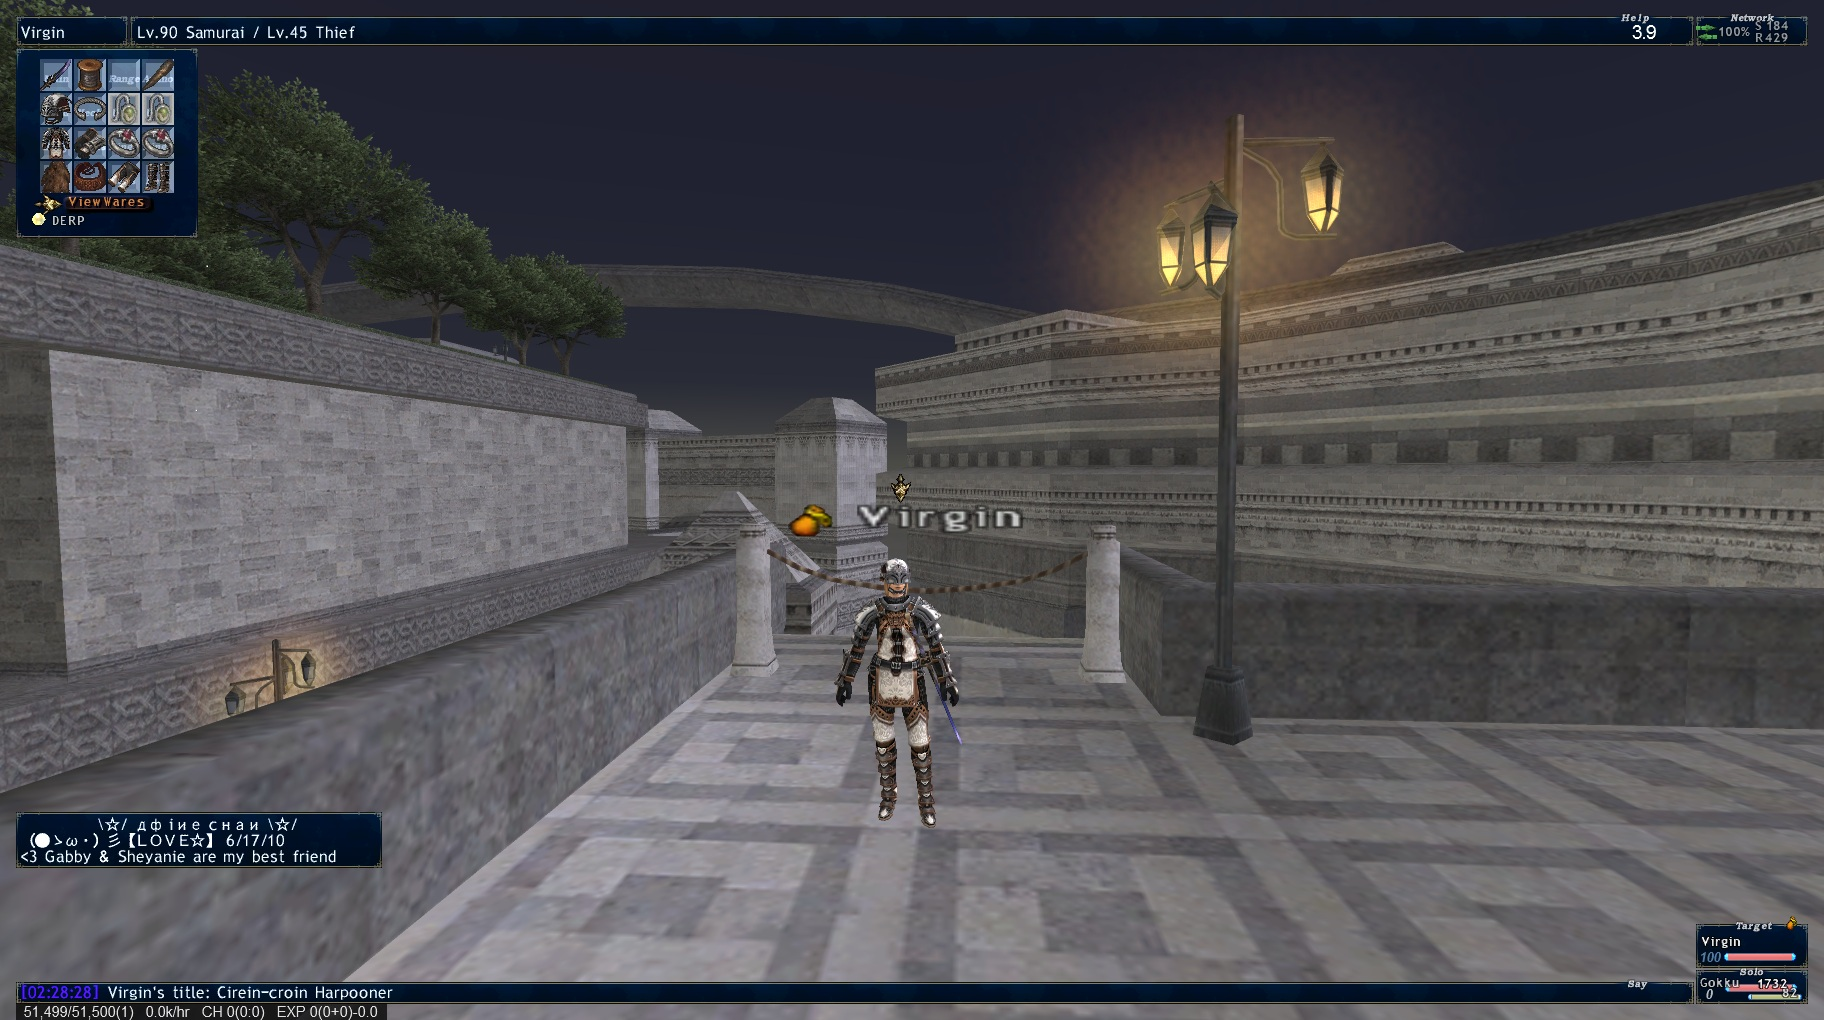 gokku ffxi will would guess this they compensate likeley makeing destroyable totems most drawback weak last forever another there aoes whatsoever about what diabio maybe helixeskaustra include completely gets fucked over debuff alot when says weapons release know also have long time wouldnt form never allow said true magian hold breath that